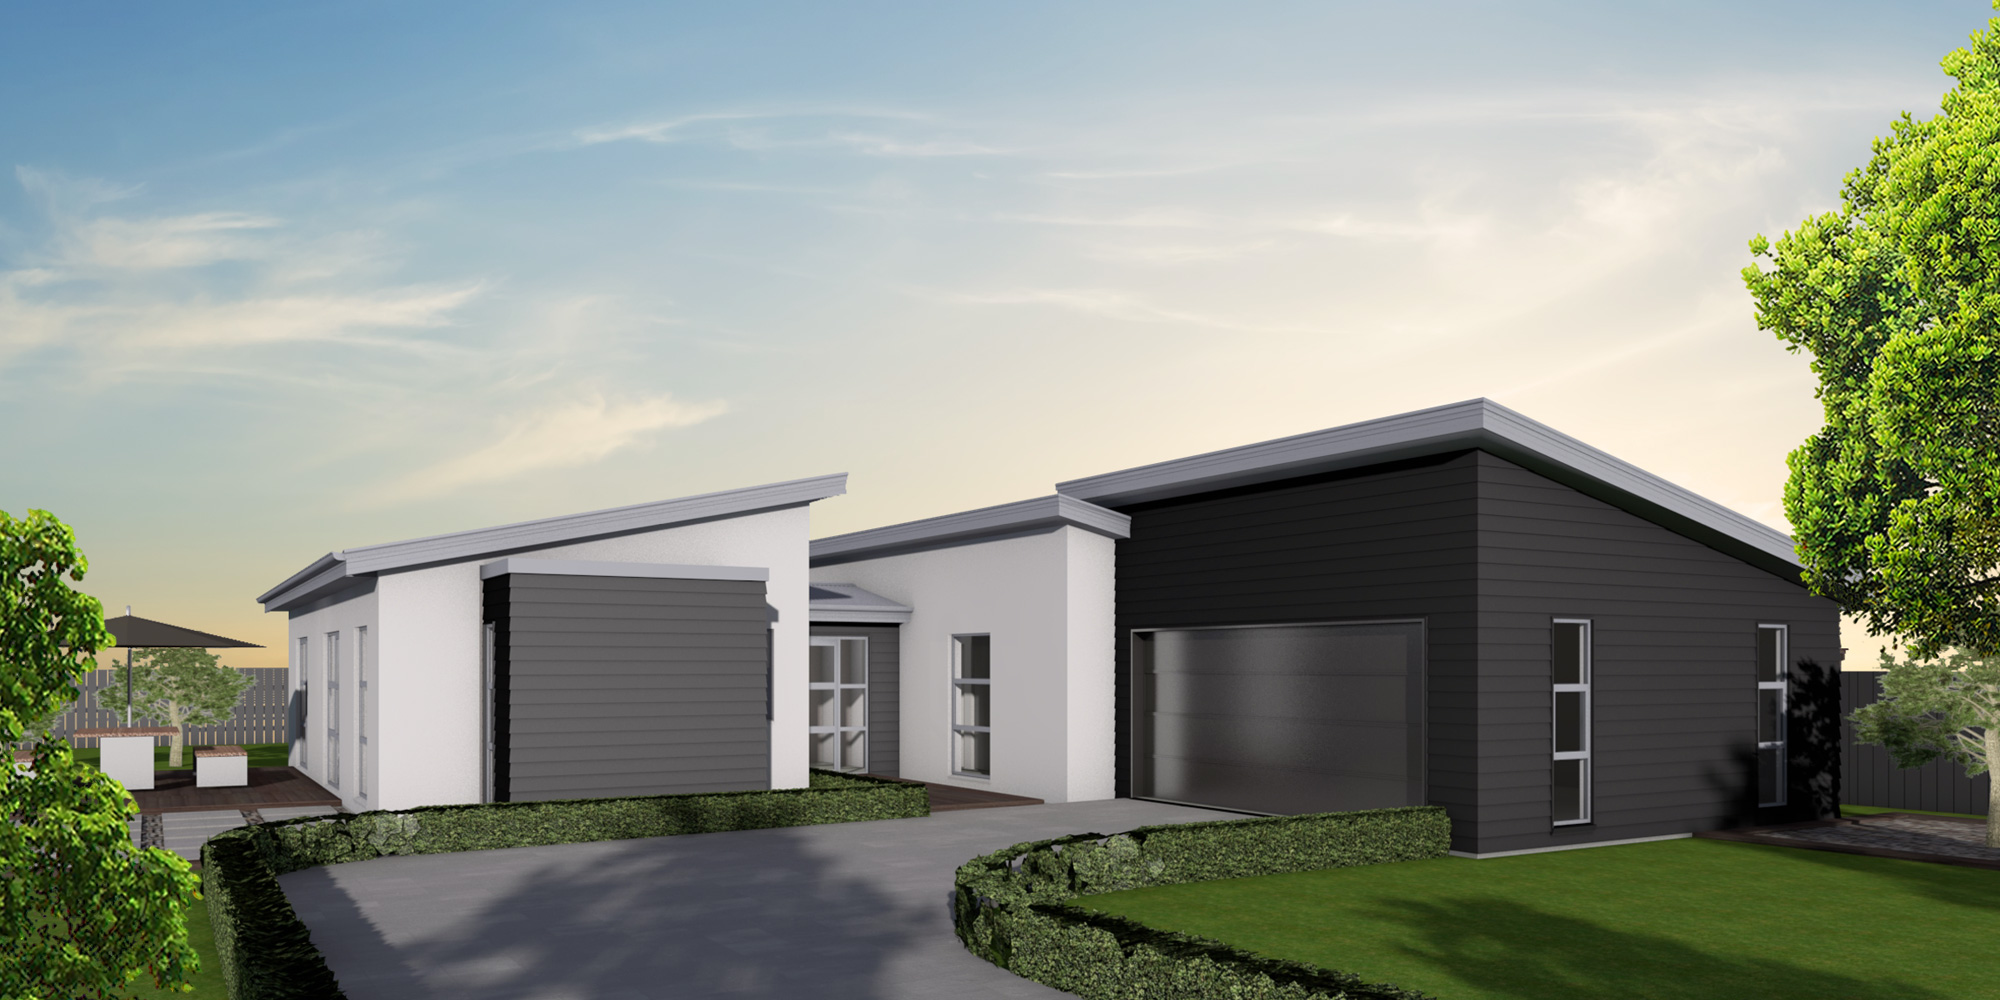 - The Haast's striking monopitch design features separate living and bedroom wings connected by an entranceway which looks through to a central courtyard area. This makes for a light-filled and sun-drenched home which feels truly integrated into its setting.